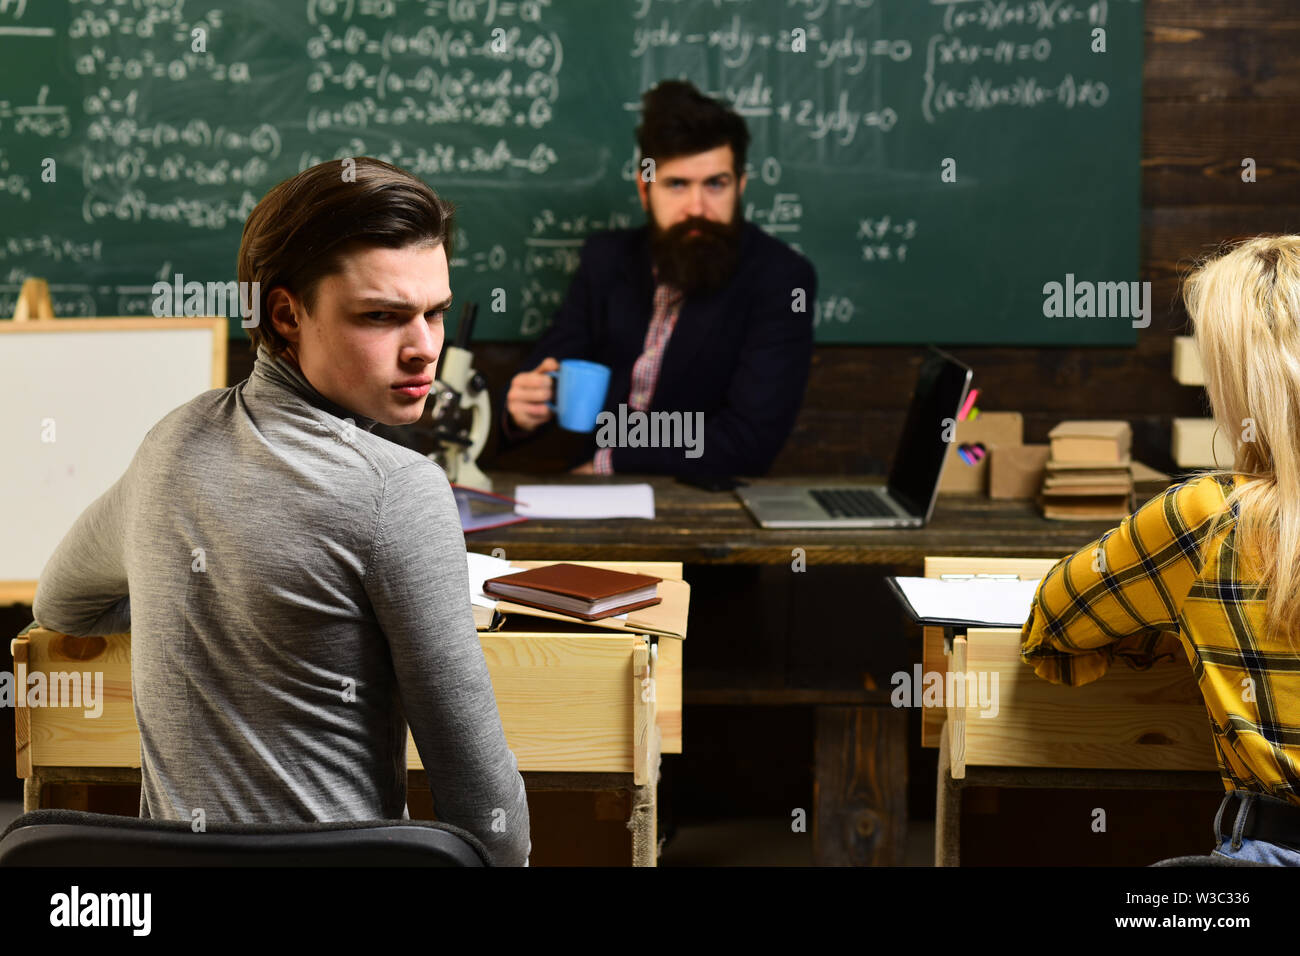 Be cool and you will be able to attract and retain lot more students. ollaboration with teacher is beneficial to the success of student - Stock Image